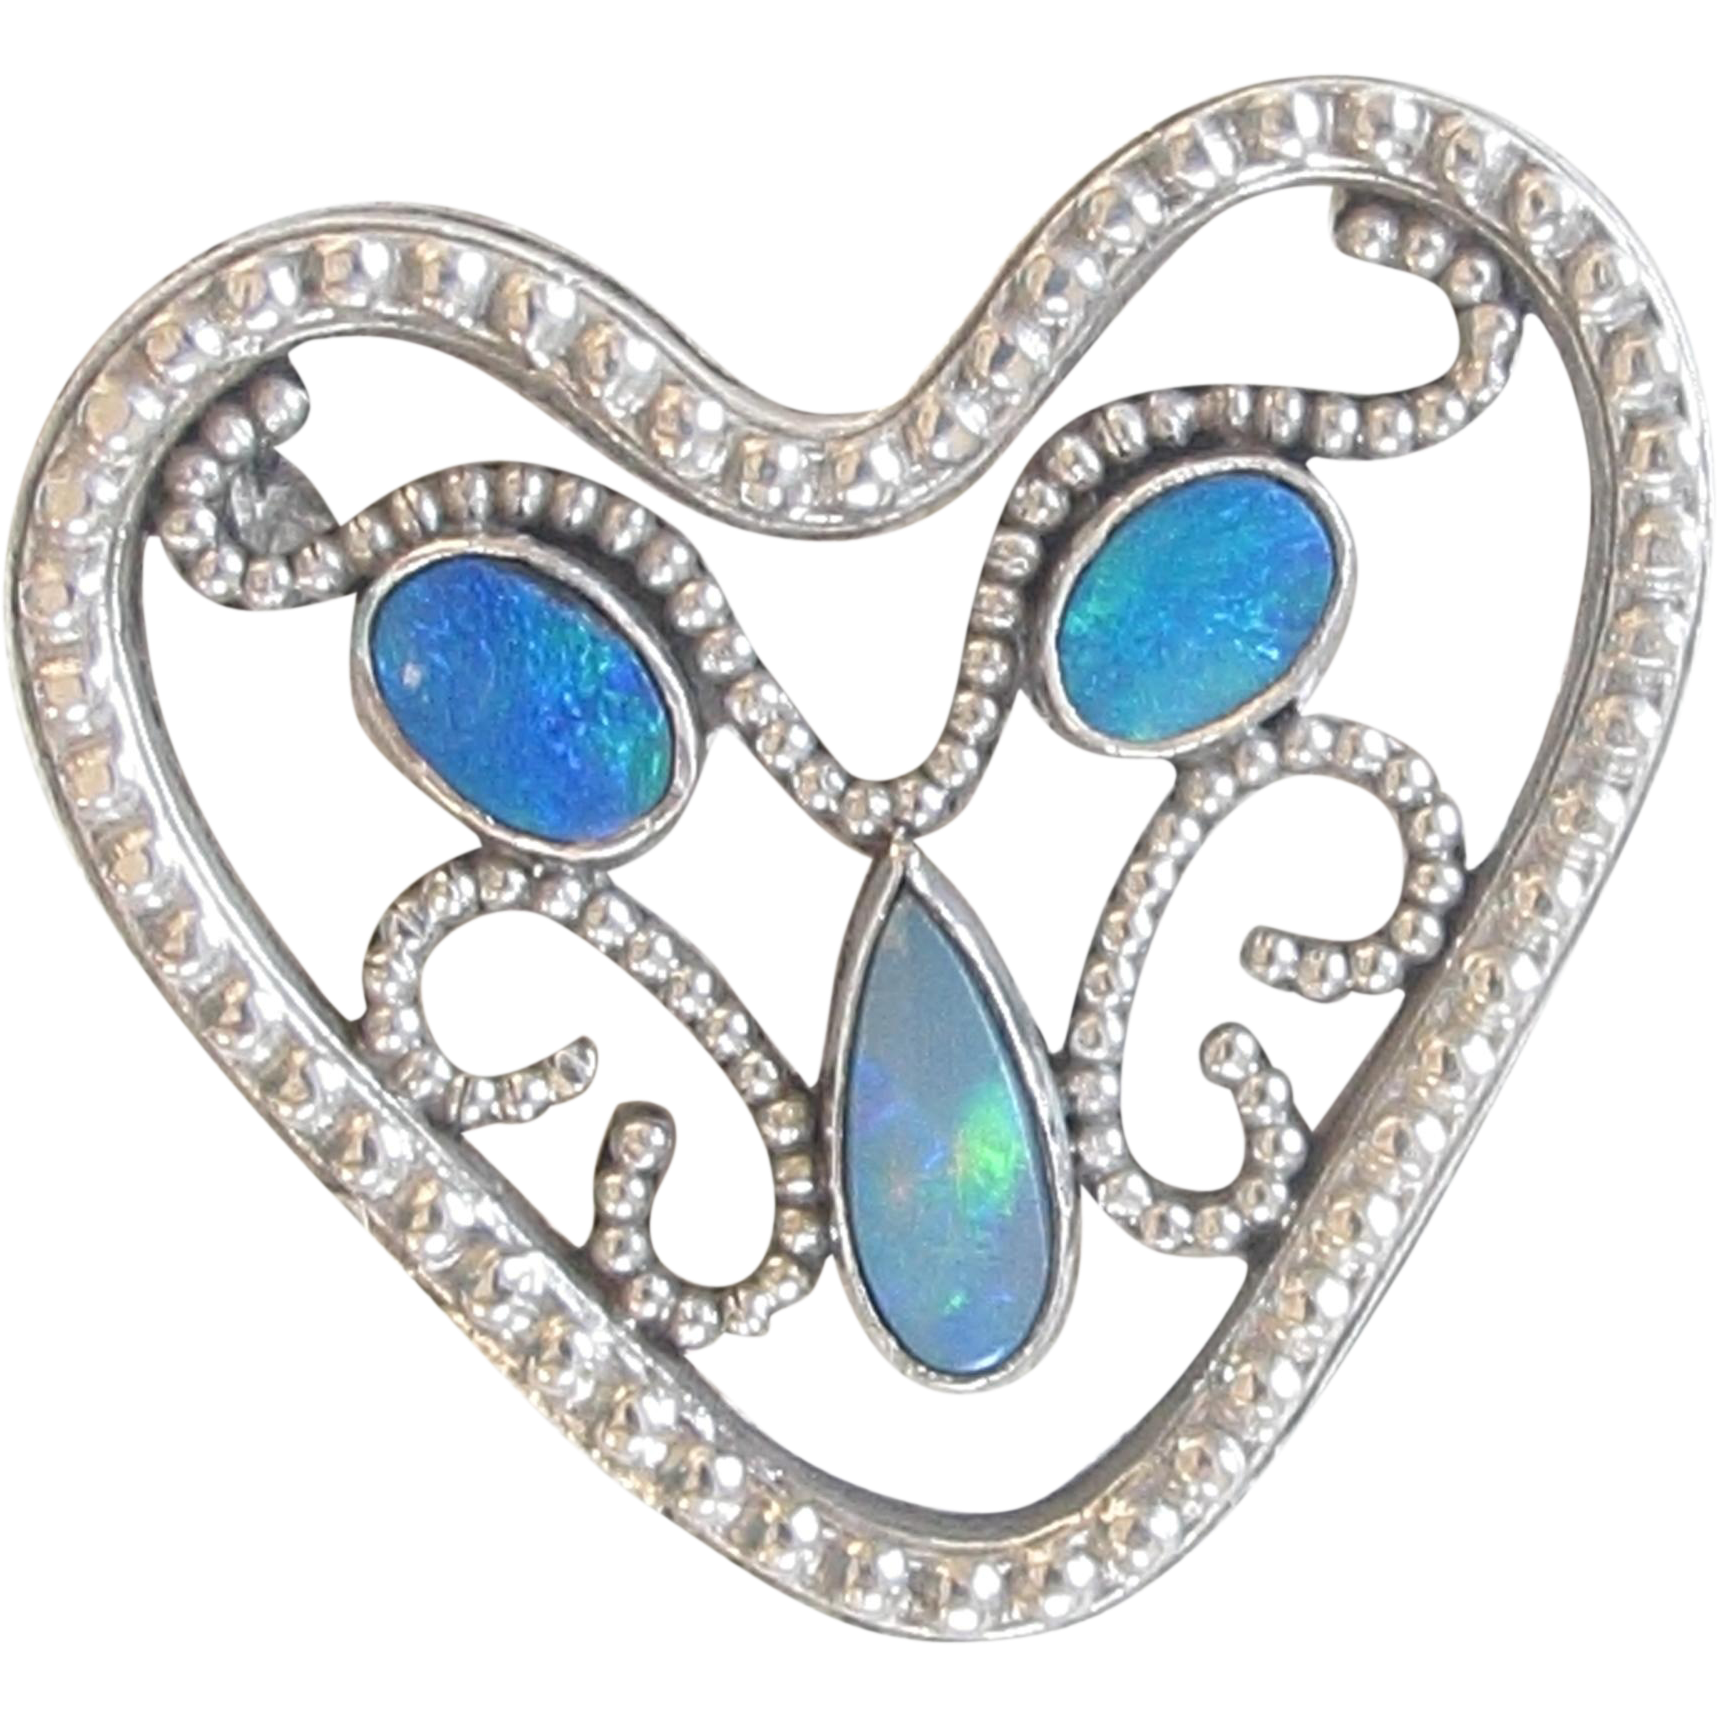 Arts & Crafts/Art Nouveau Silver and Opal Doublet Heart Brooch Pin